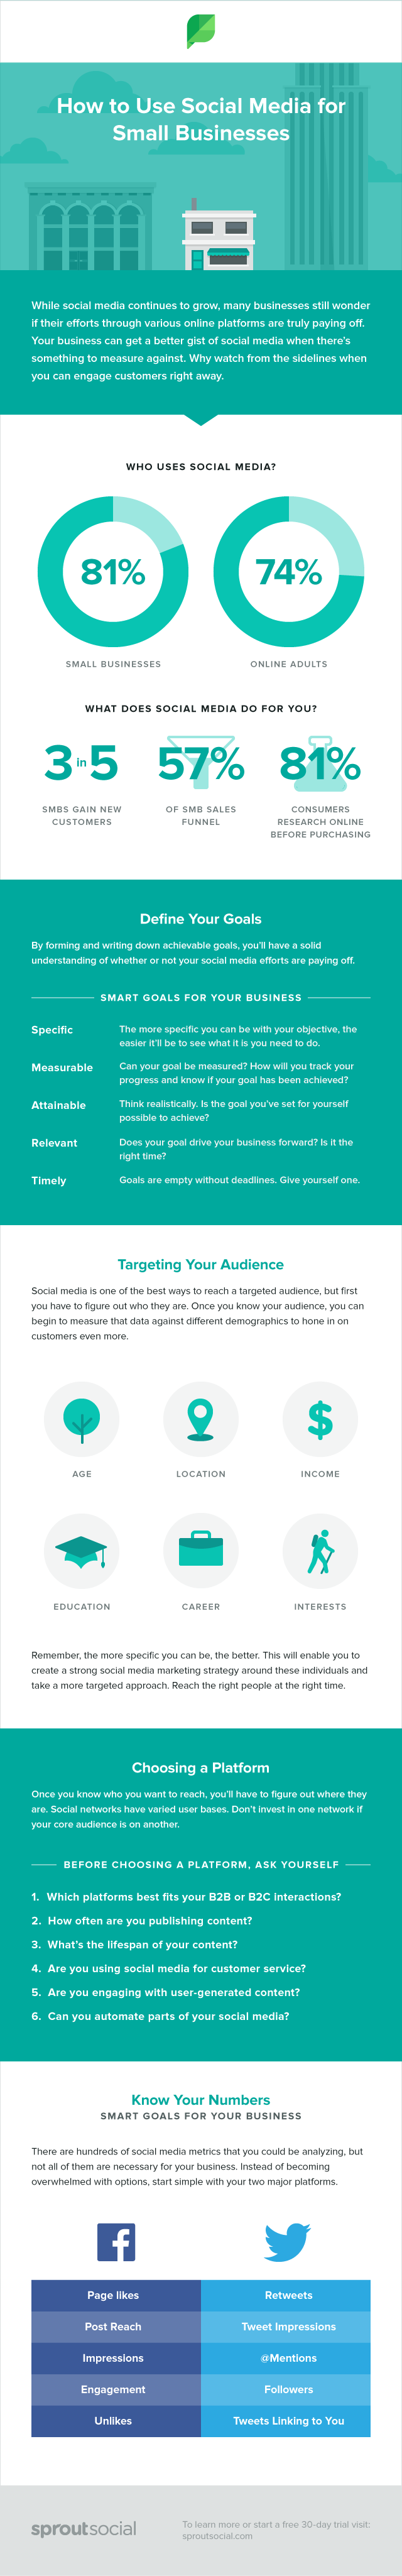 Social Media Marketing For Your Company: Think Strategic, Not Scattered